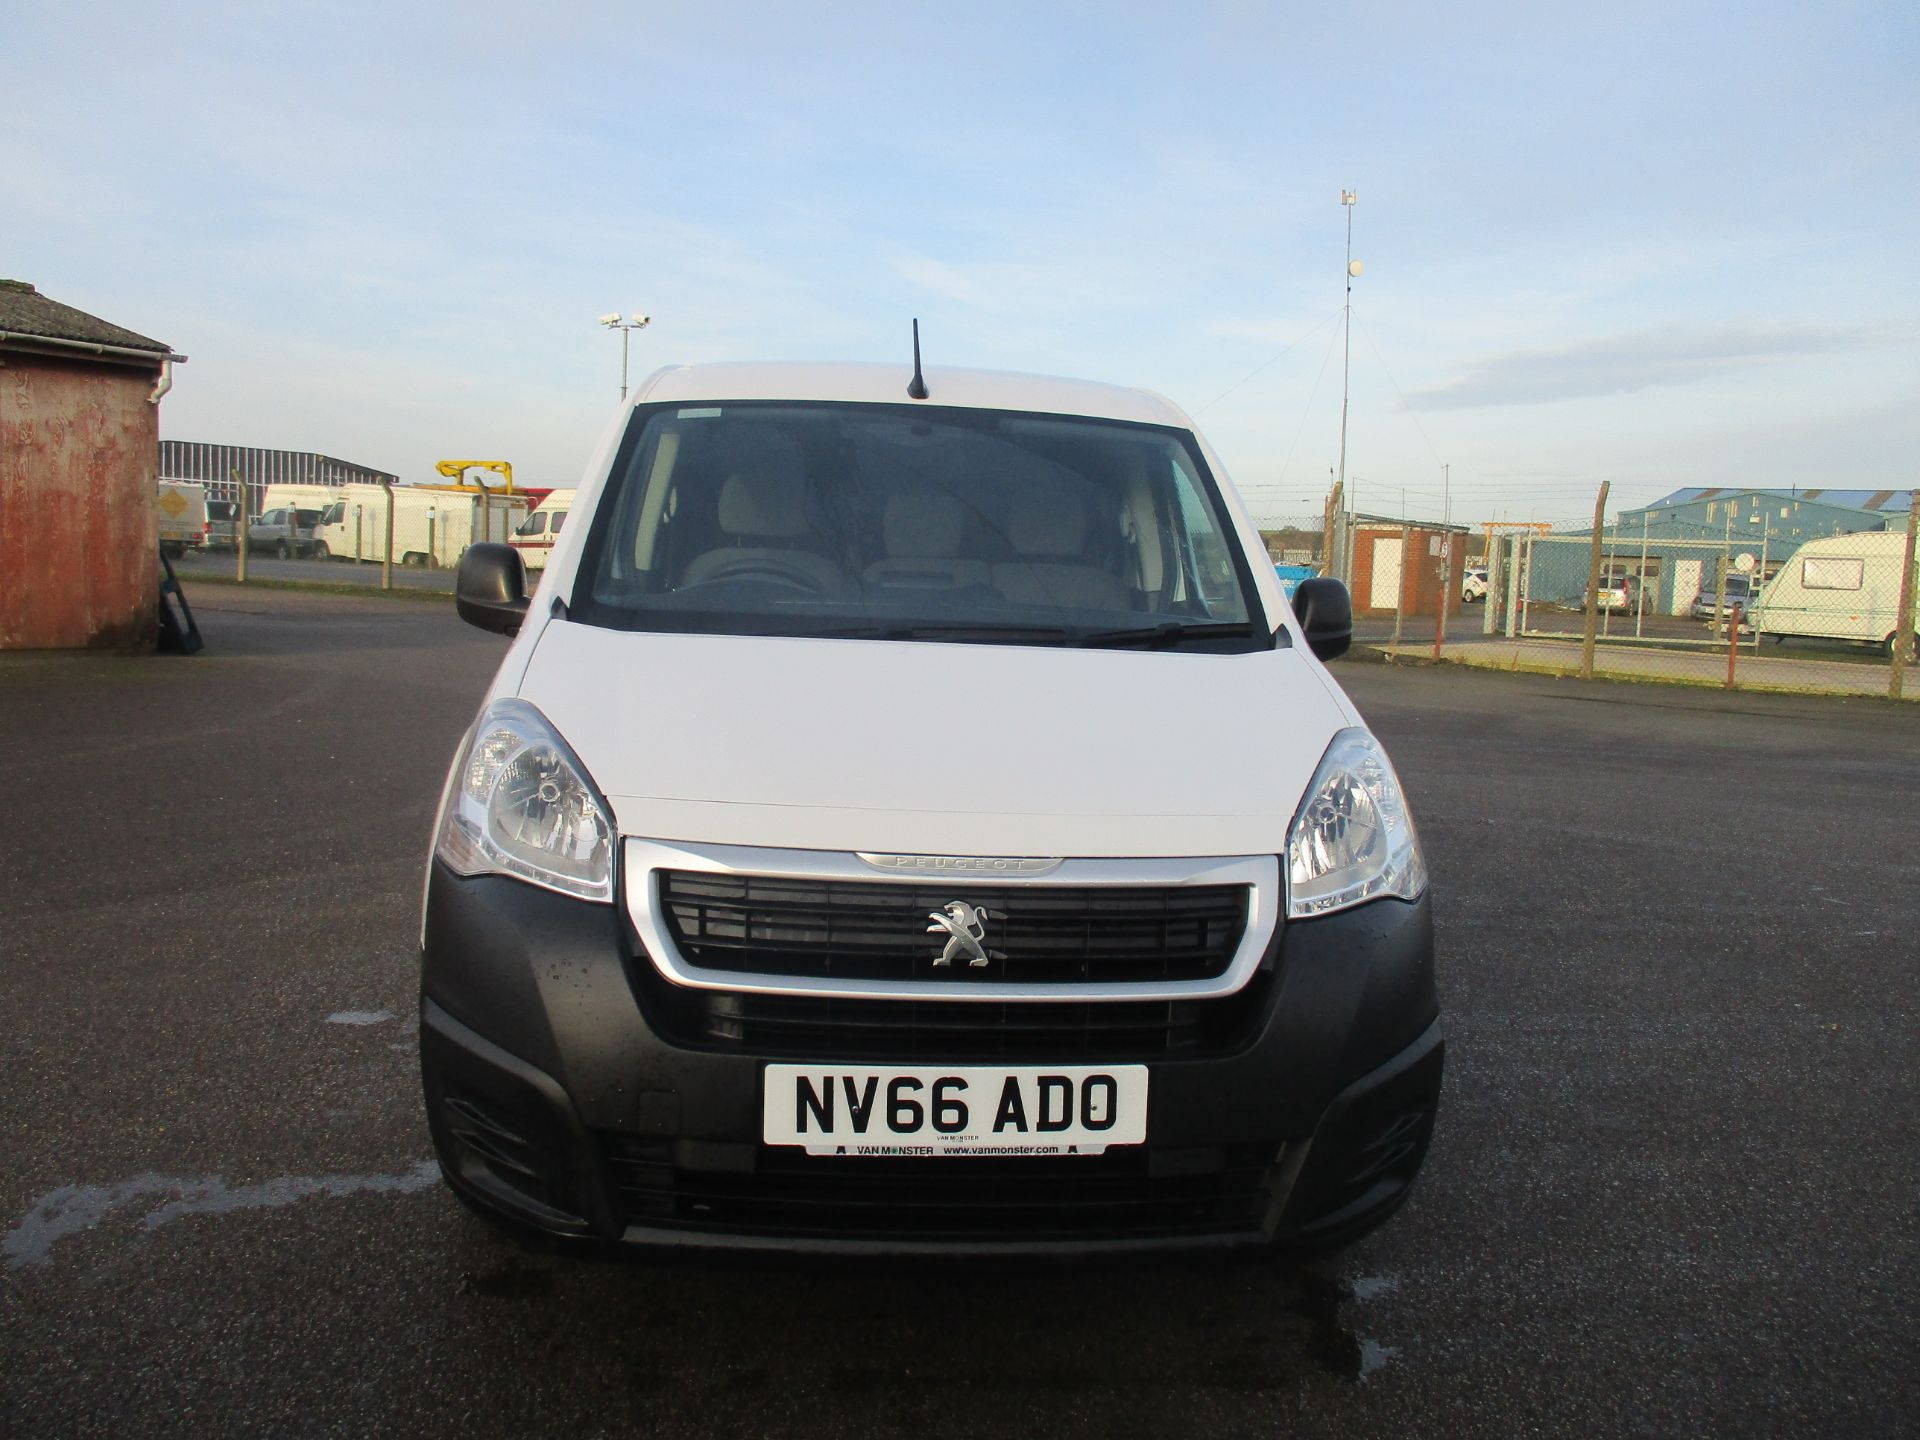 2016 Peugeot Partner L1 850 1.6 BLUE HDI 100 PROFESSIONAL EURO 6. AIR CON. 3 SEATER (NV66ADO) Image 2